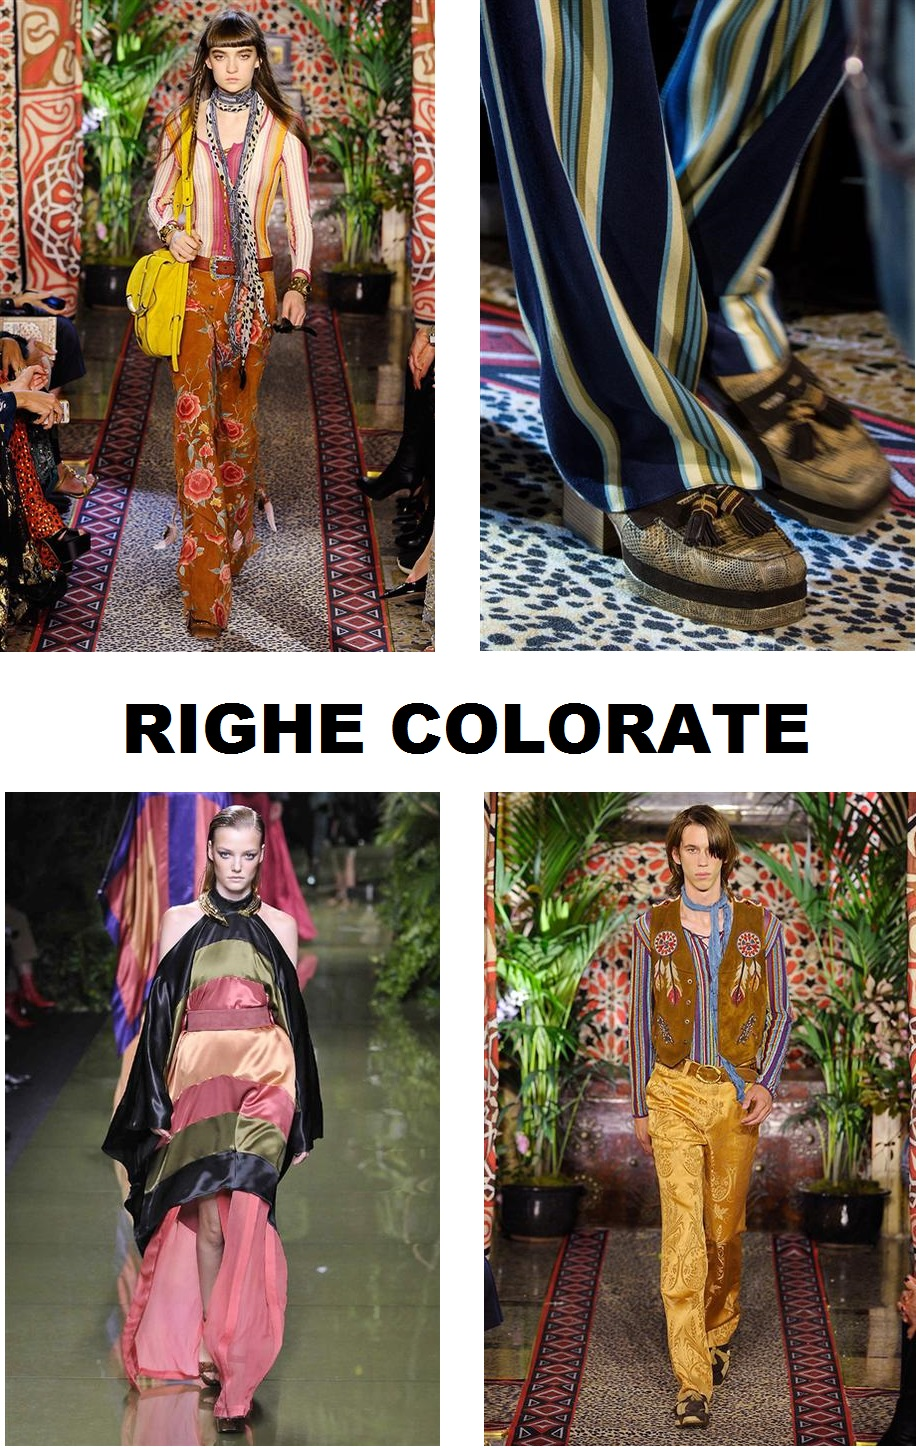 righe colorate COLLAGE